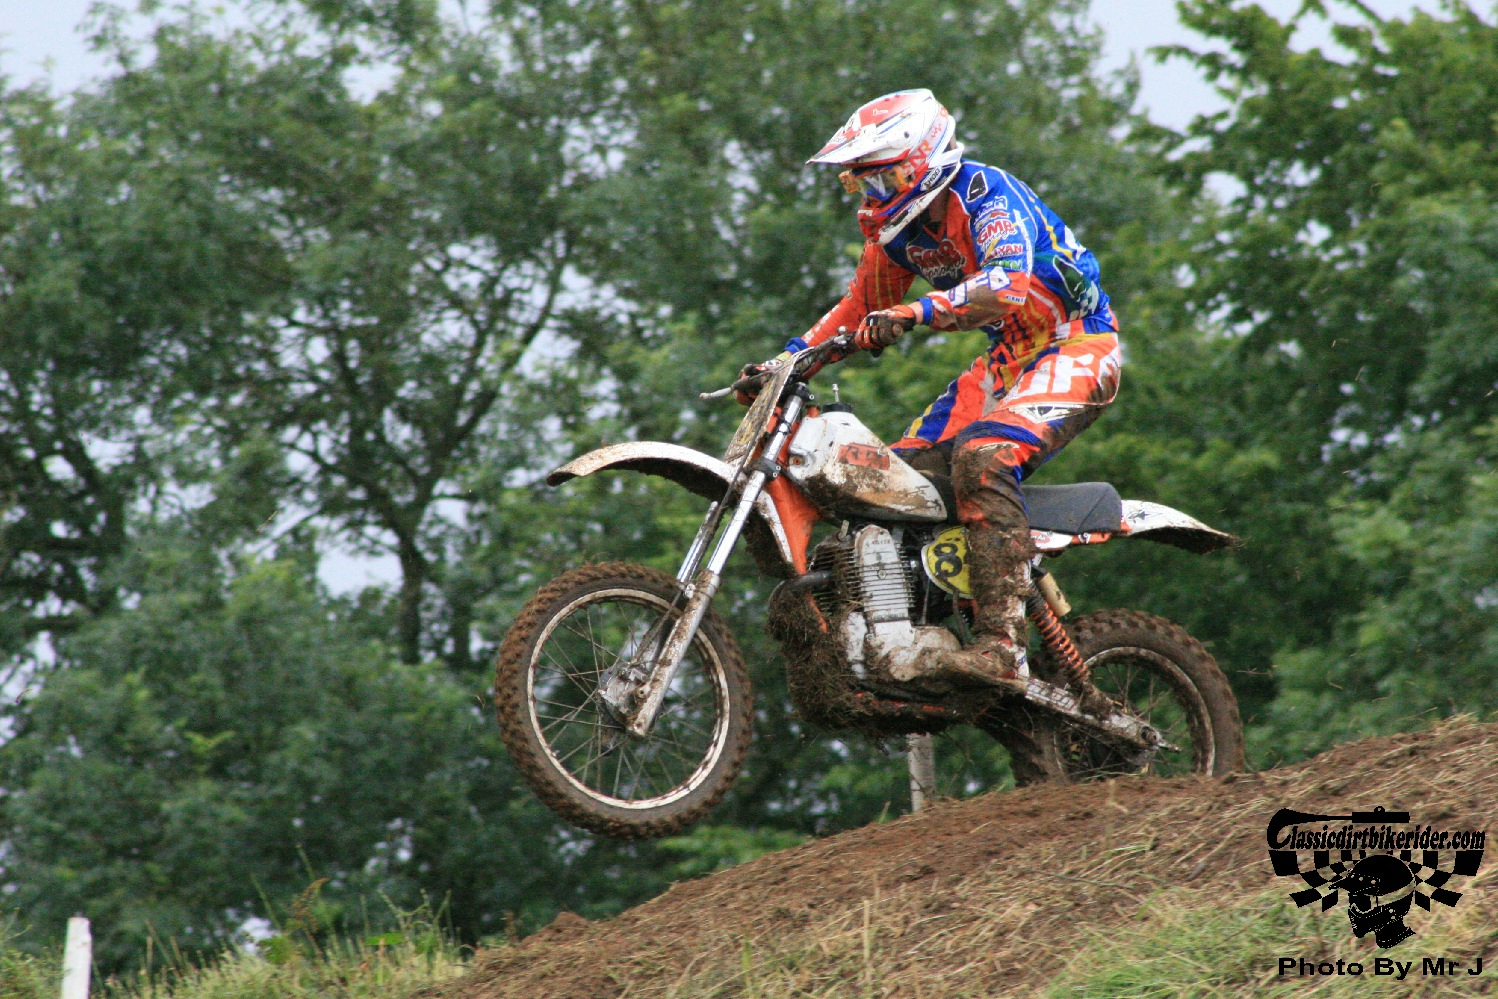 king of the castle 2015 photos Farleigh Castle twinshock motocross classicdirtbikerider.com 116